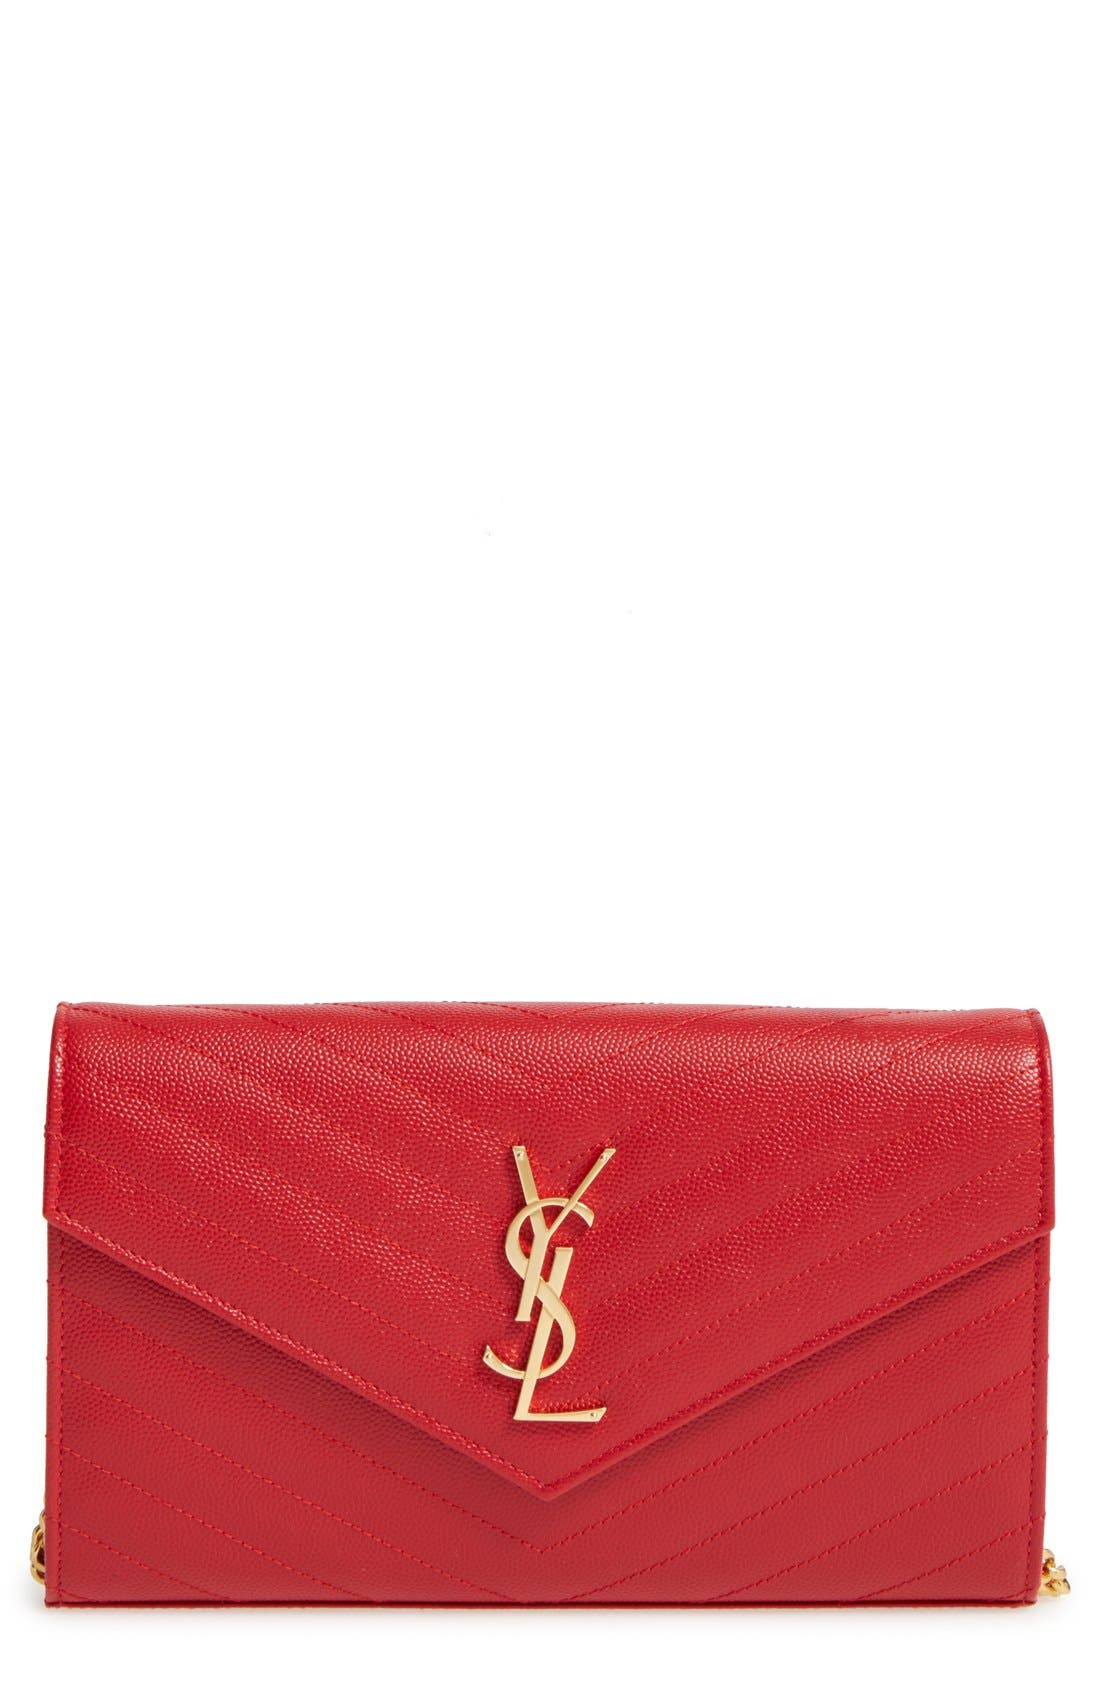 Alternate Image 1 Selected - Saint Laurent 'Large Monogram' Quilted Leather Wallet on a Chain